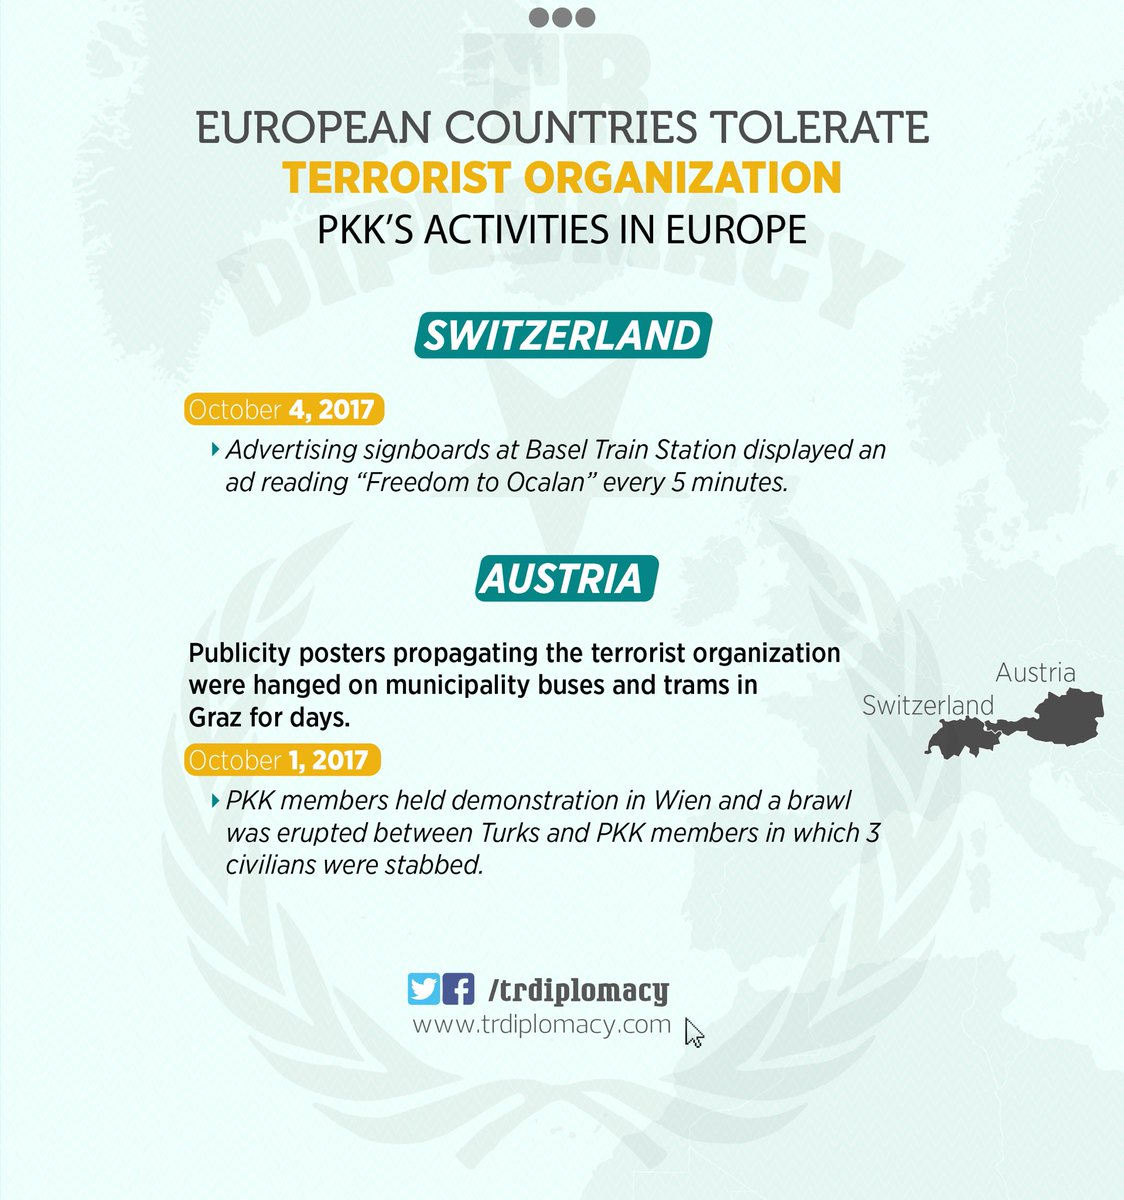 European countries tolerate the terrorist organization PKK's provocative activities in Europe